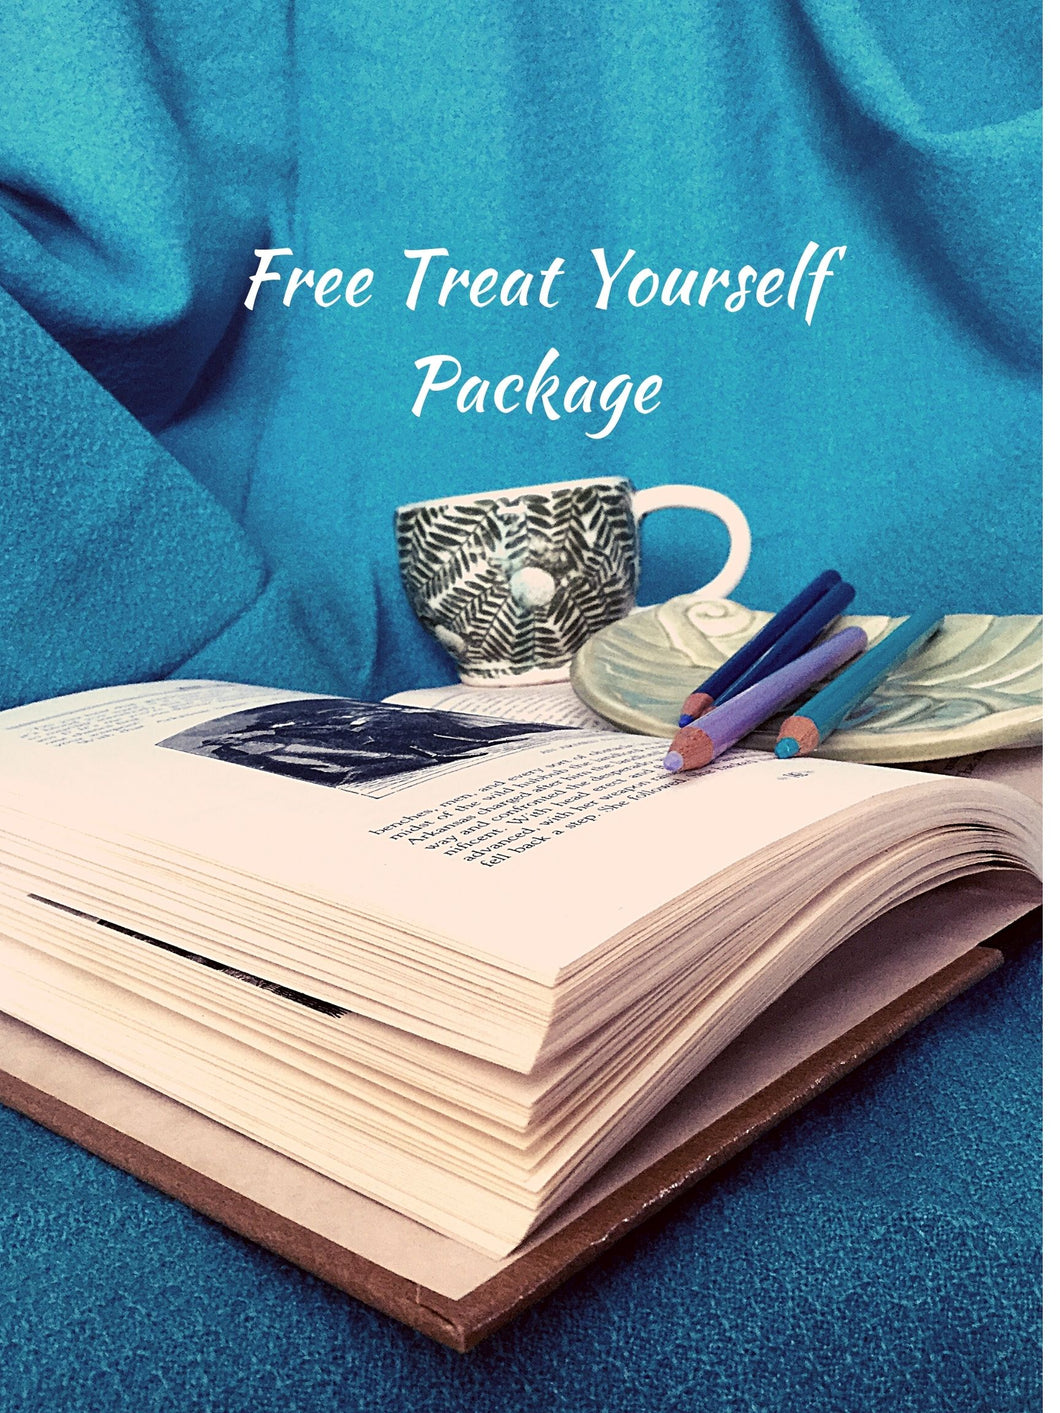 Treat Yourself Package